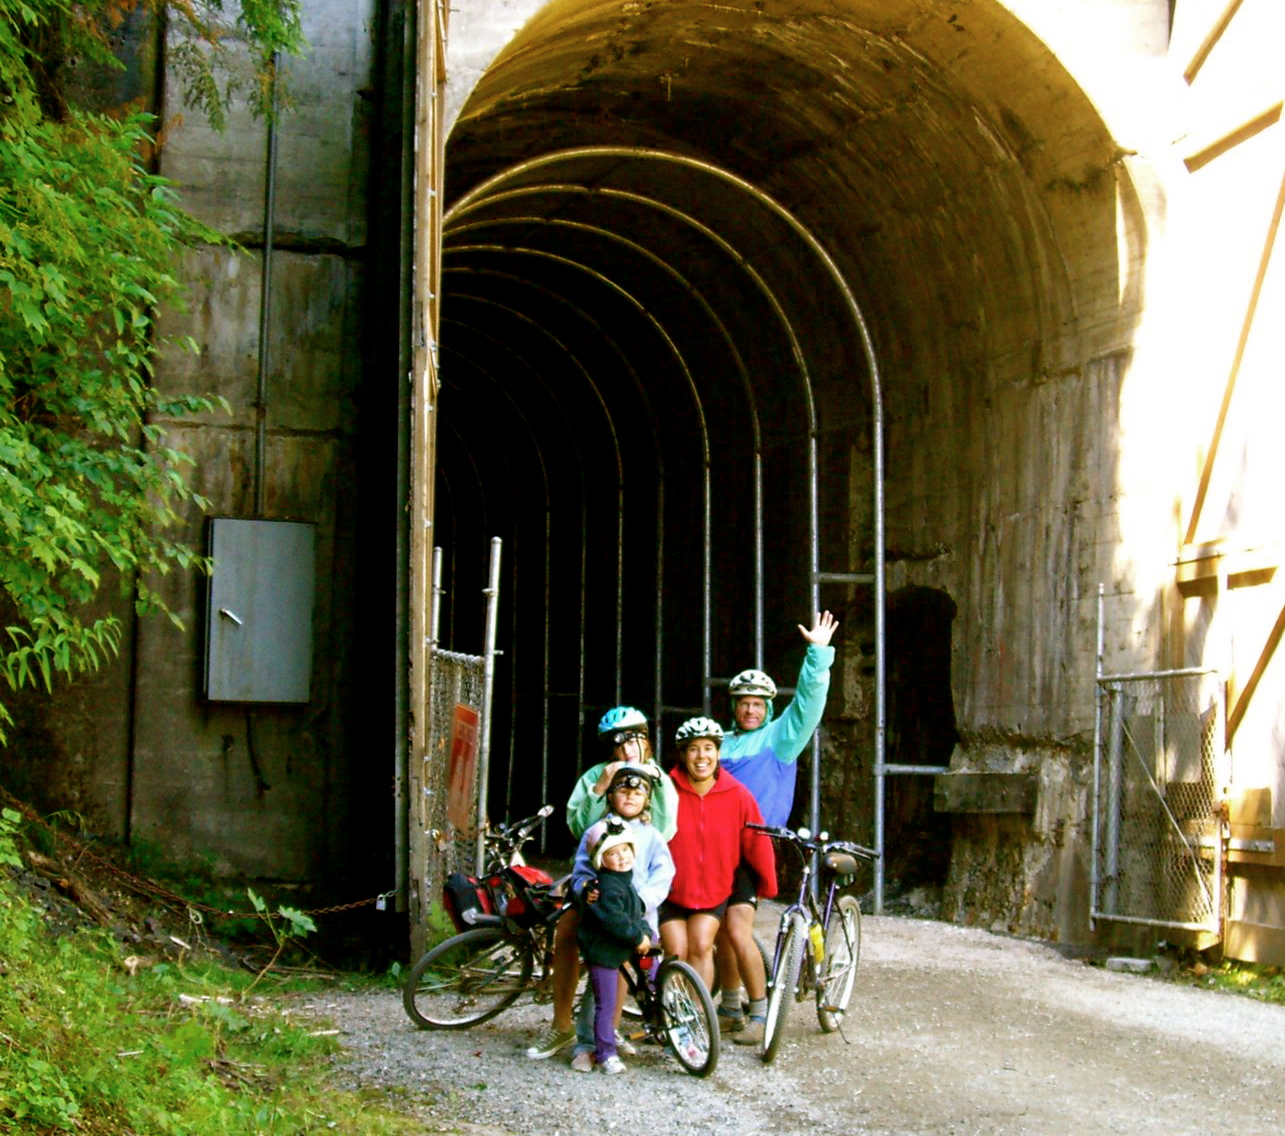 Family Bike Ride on the Iron Horsie Trail before pedaling into the almost-2.5 mile long Snoqualmie Tunnel, Cascade Mountains, Sunday 20 August 2006.